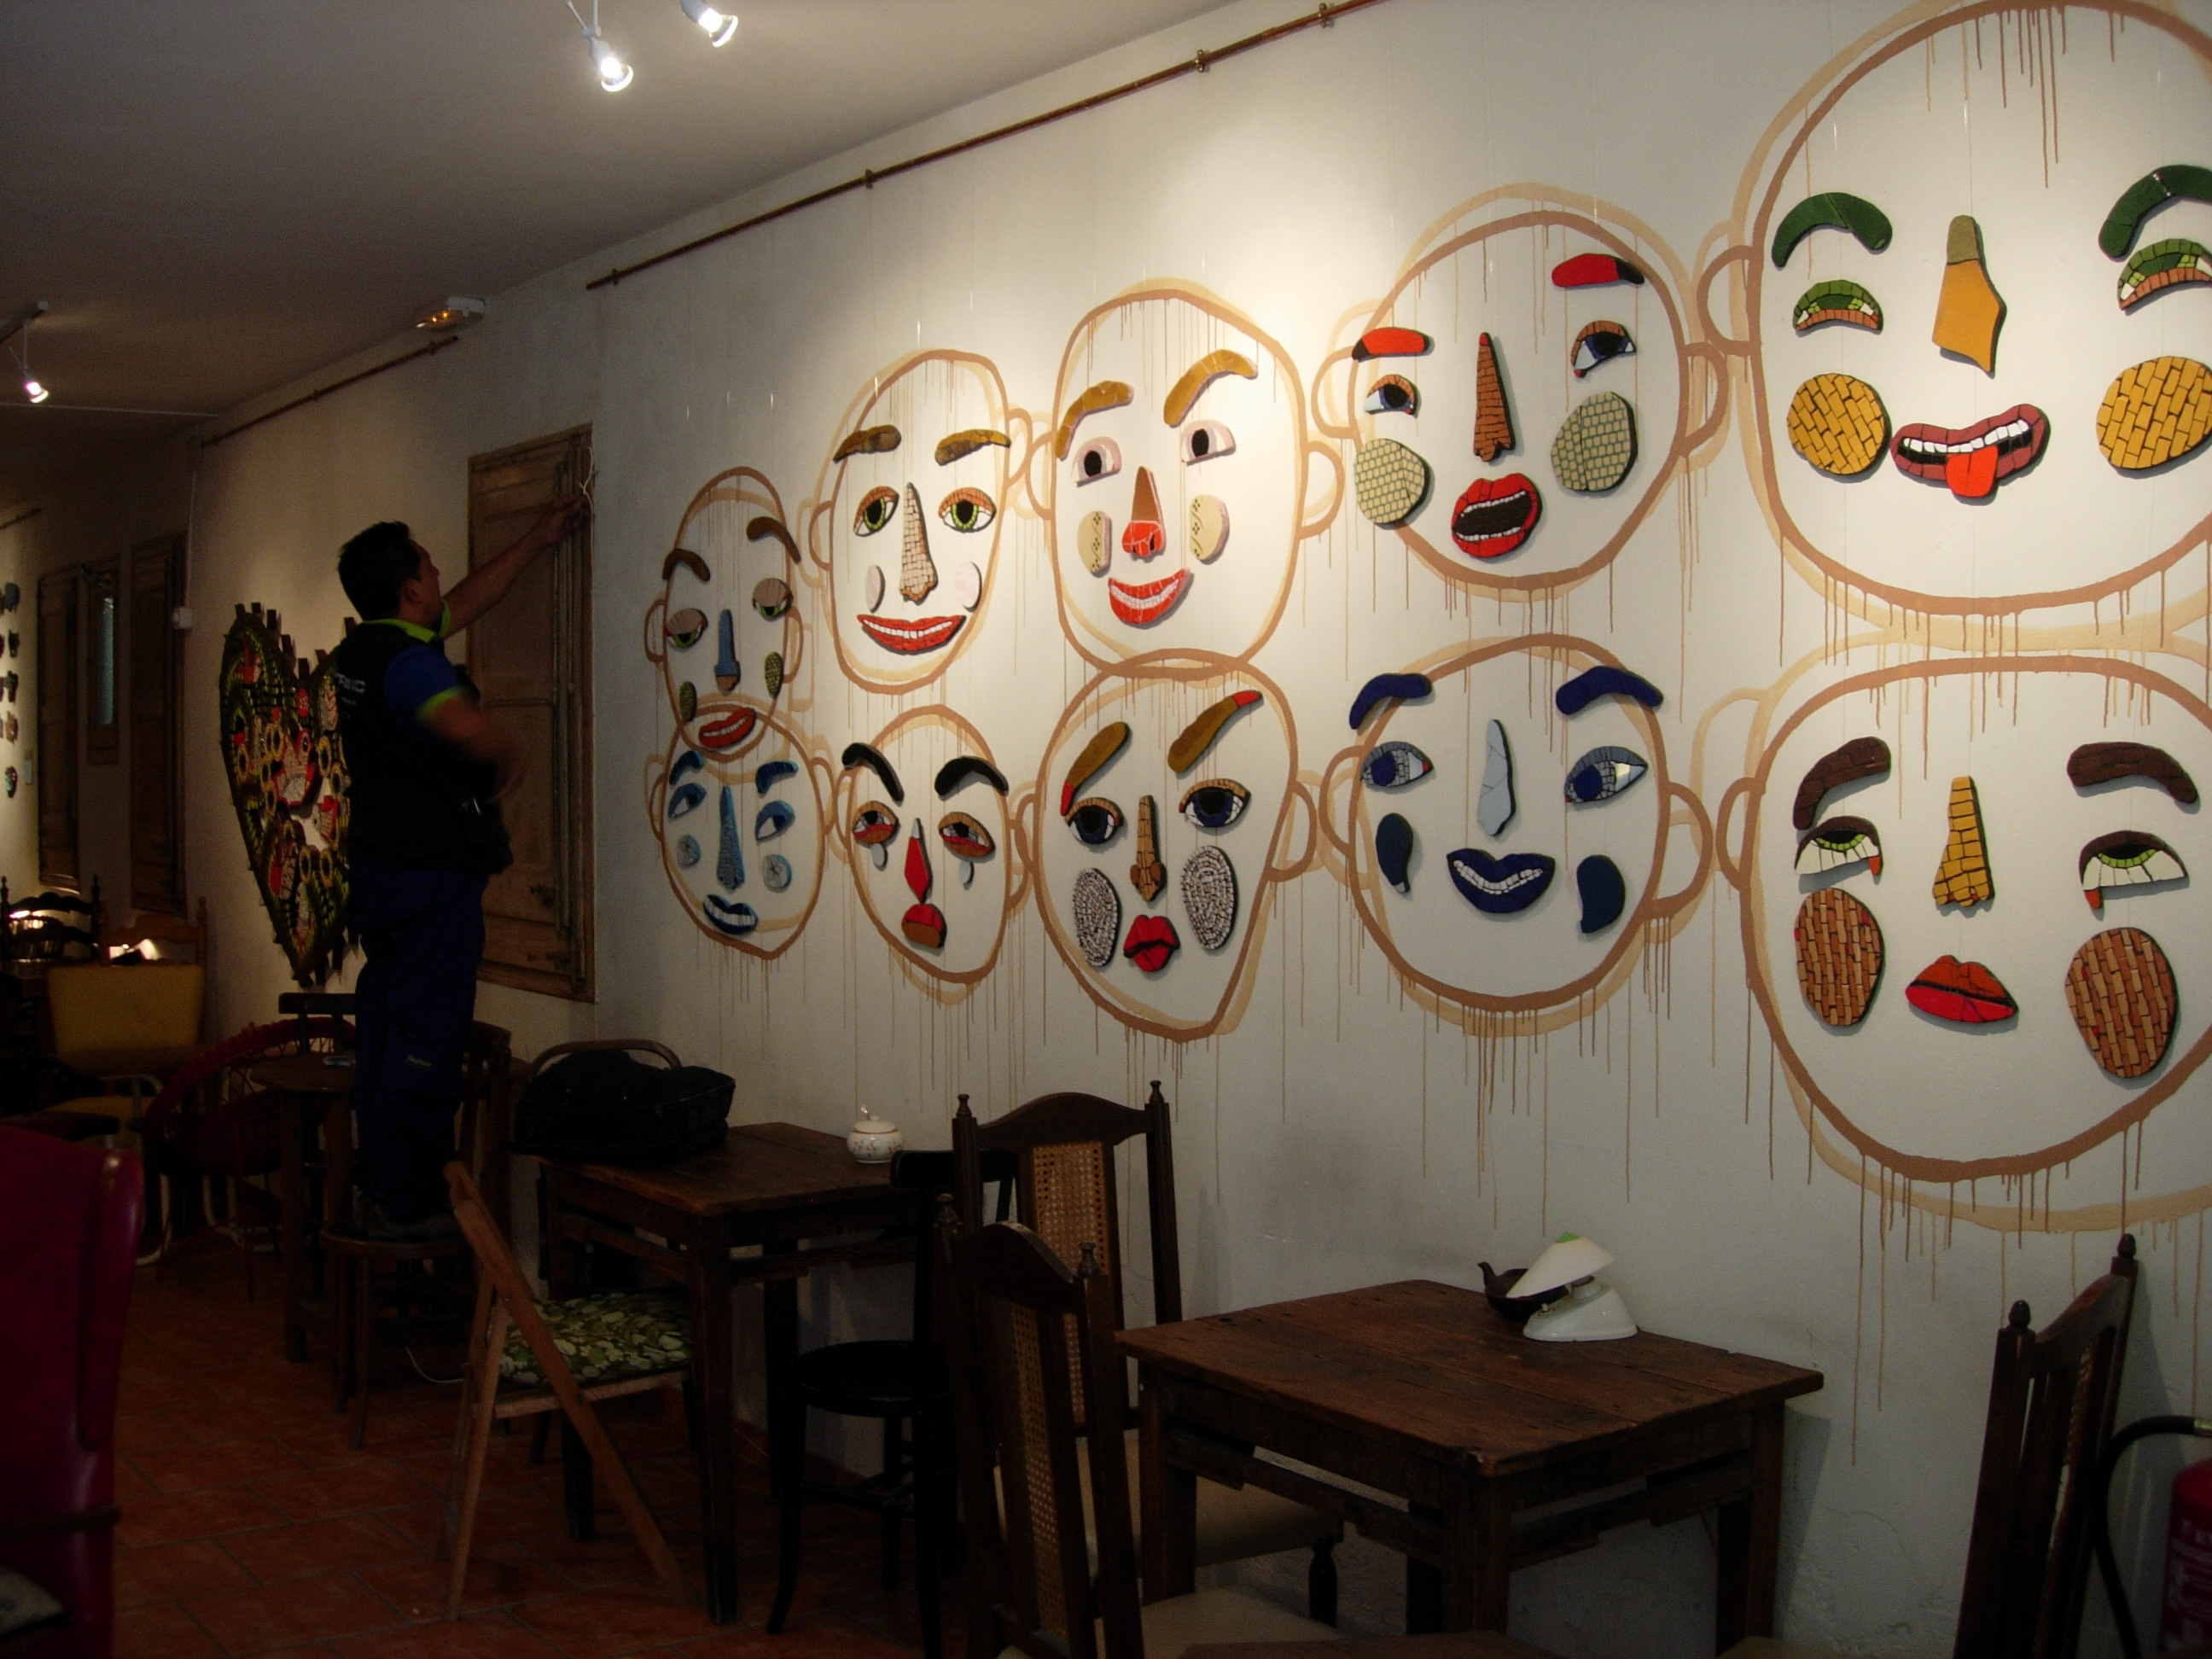 I love this installation -- painted directly on the walls, and the mosaic pieces hung to complete the faces.